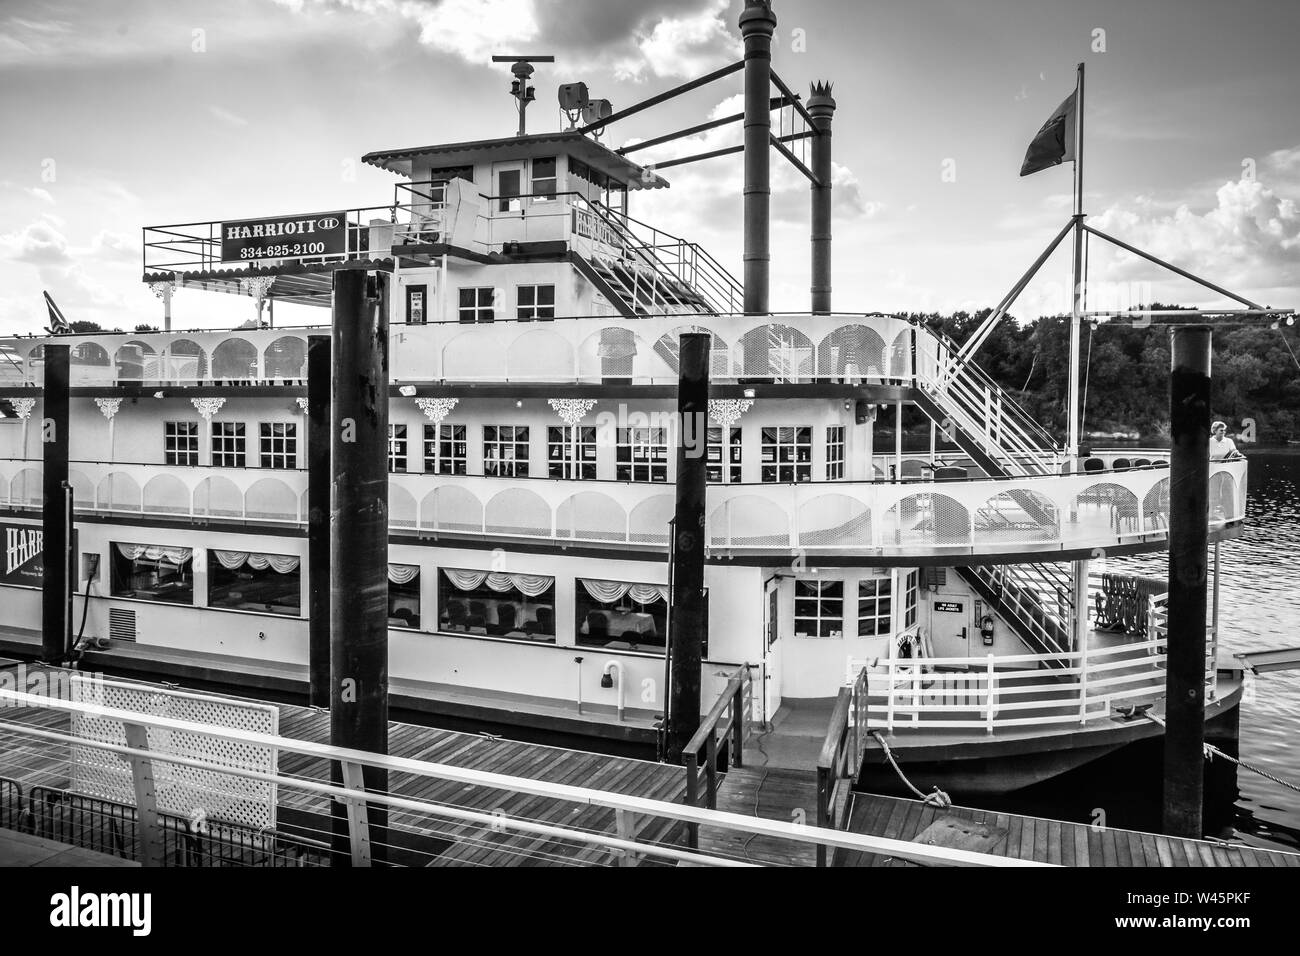 The Harriott II Riverboat, awaiting tourists for river cruises docked at the Riverwalk Park wharf in Montgomery, AL, USA, in black and white Stock Photo